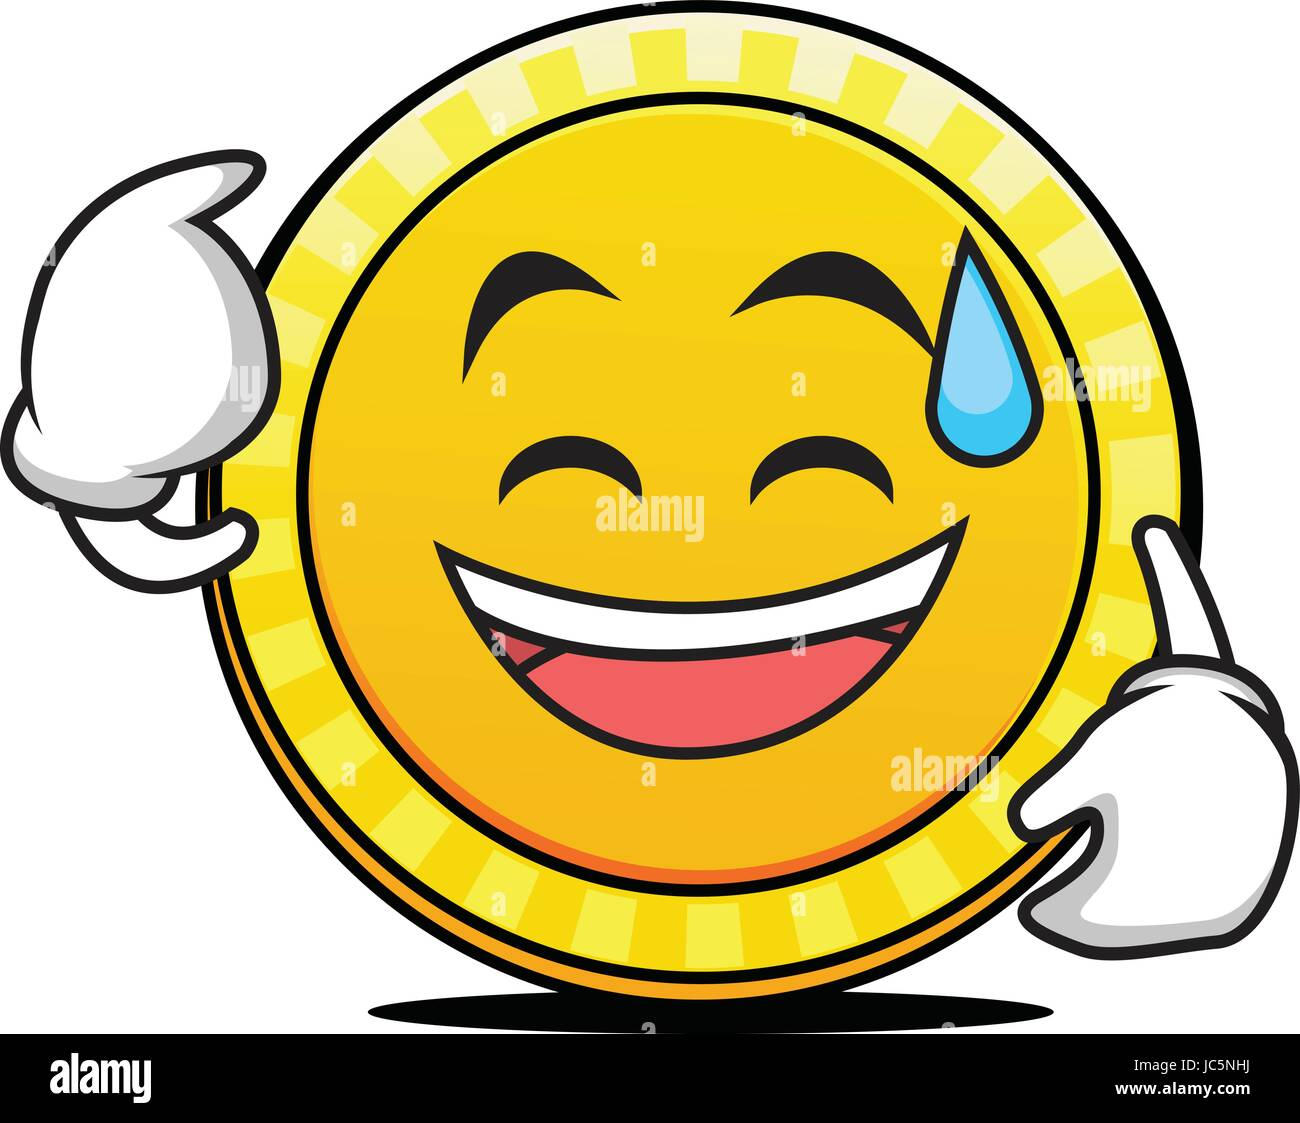 Sweat smile coin cartoon character - Stock Vector